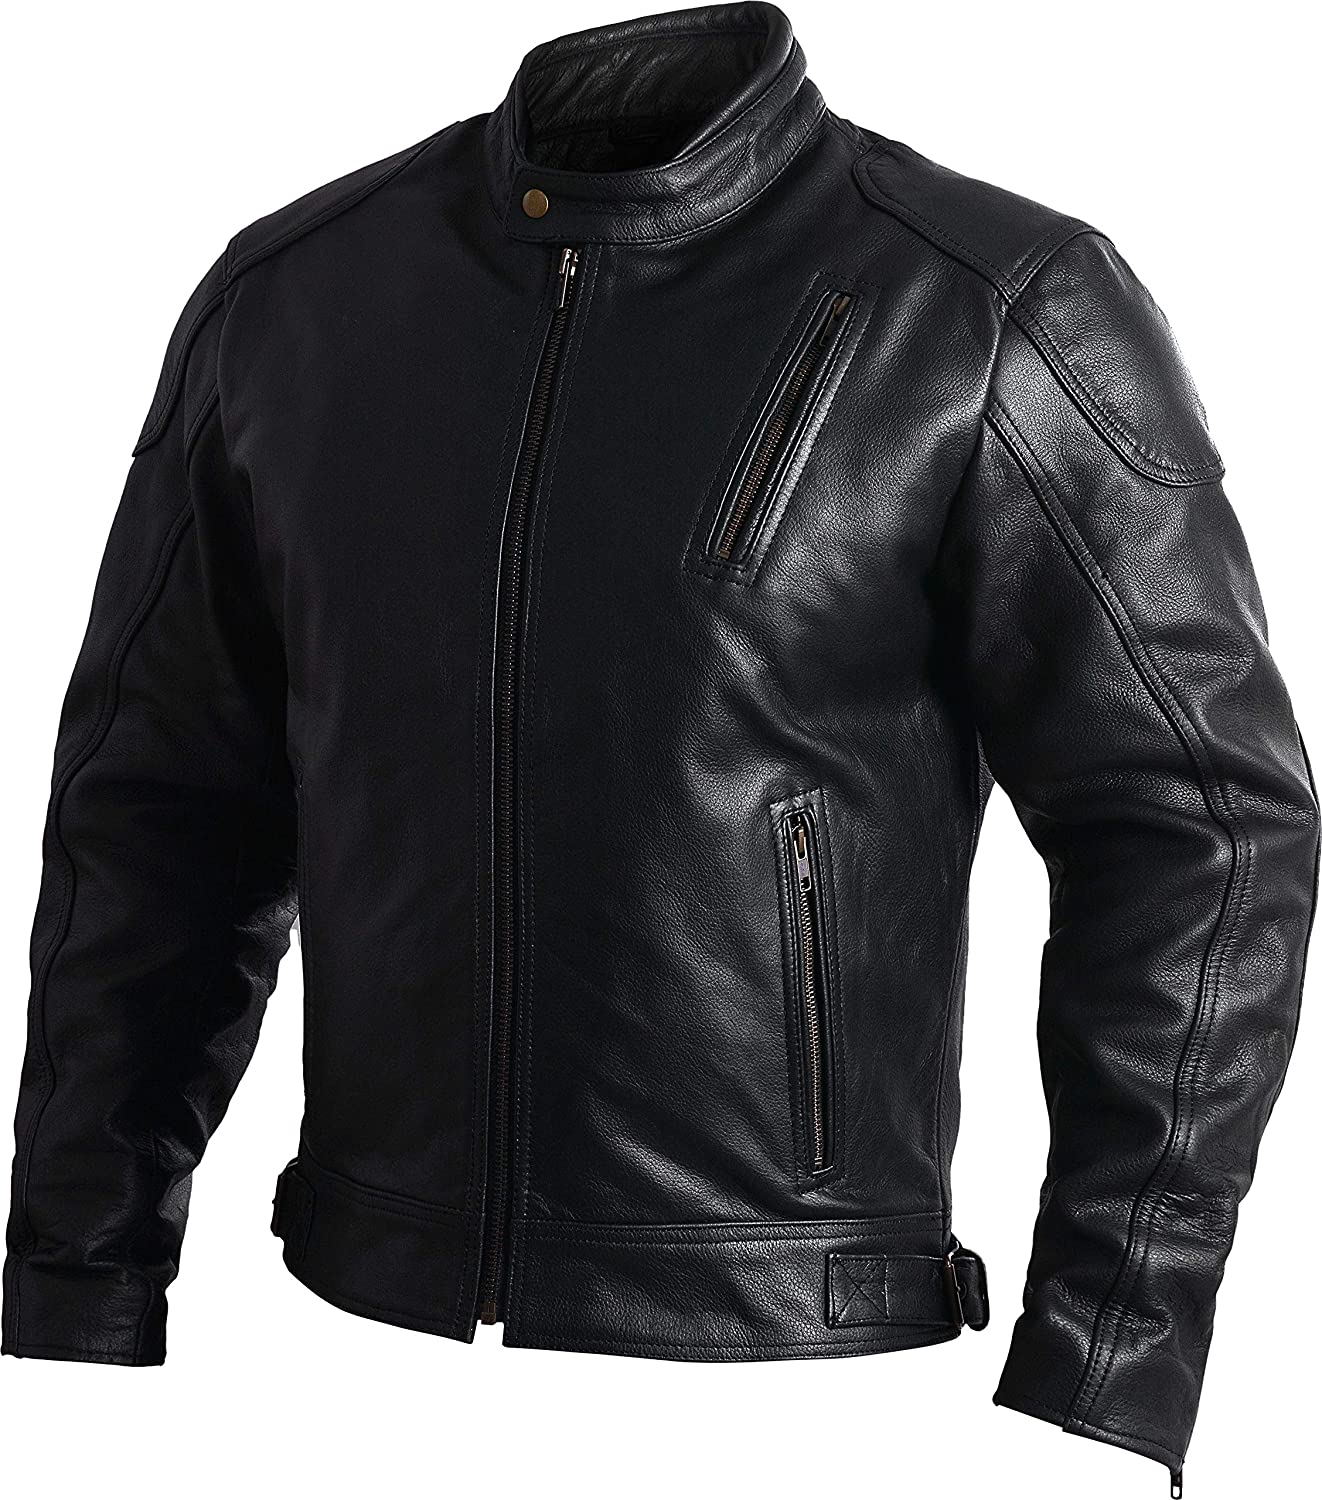 S Mens Leather Motorcycle Jackets Black Moto Riding Motorbike Racing Cafe Racer Biker Jacket CE Armored